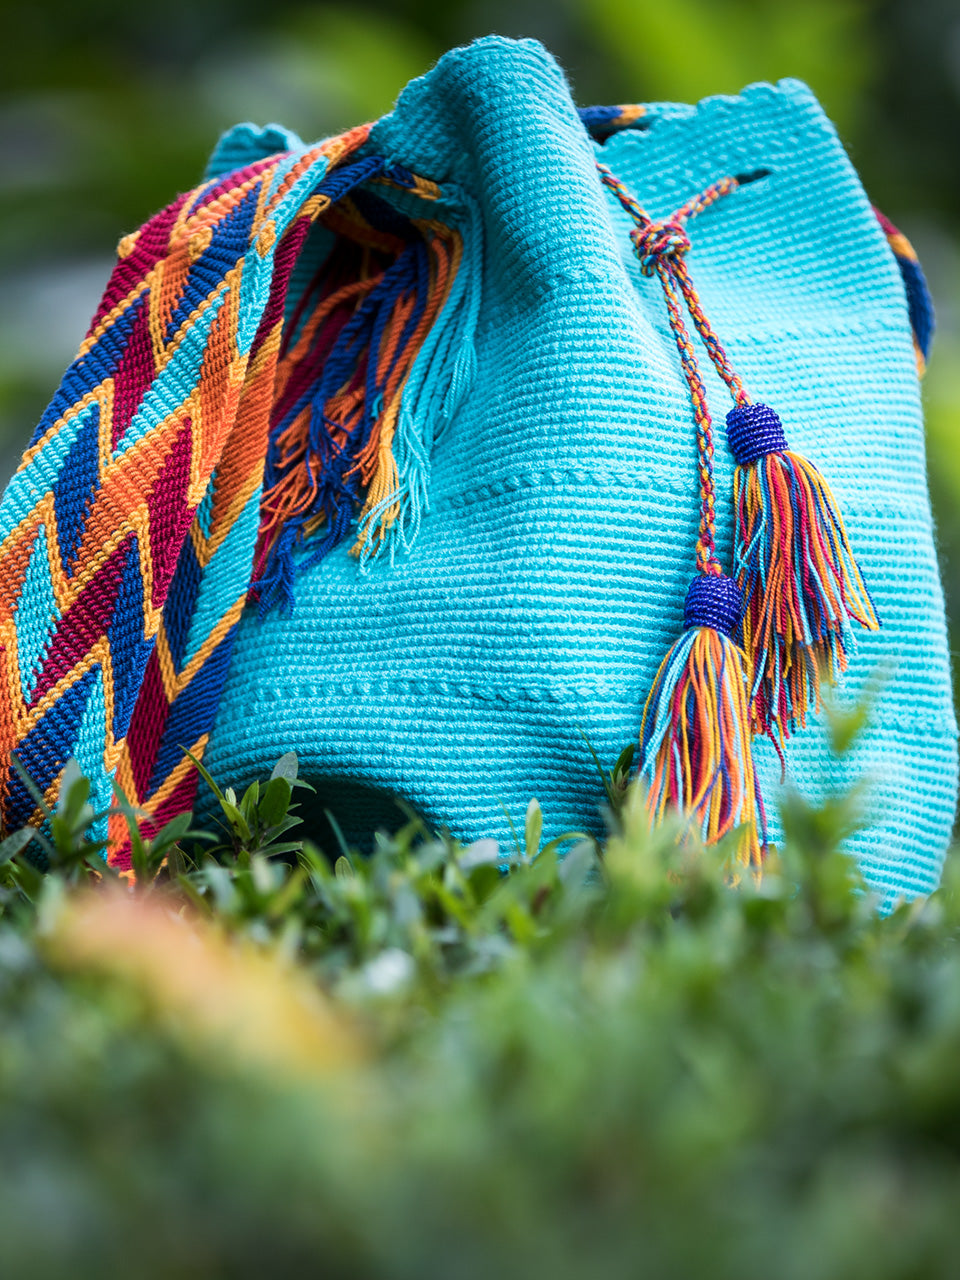 Turquoise woven shoulder bag with tassels and beads Palmazul Beachwear Lifestyle Wayuu Mochila